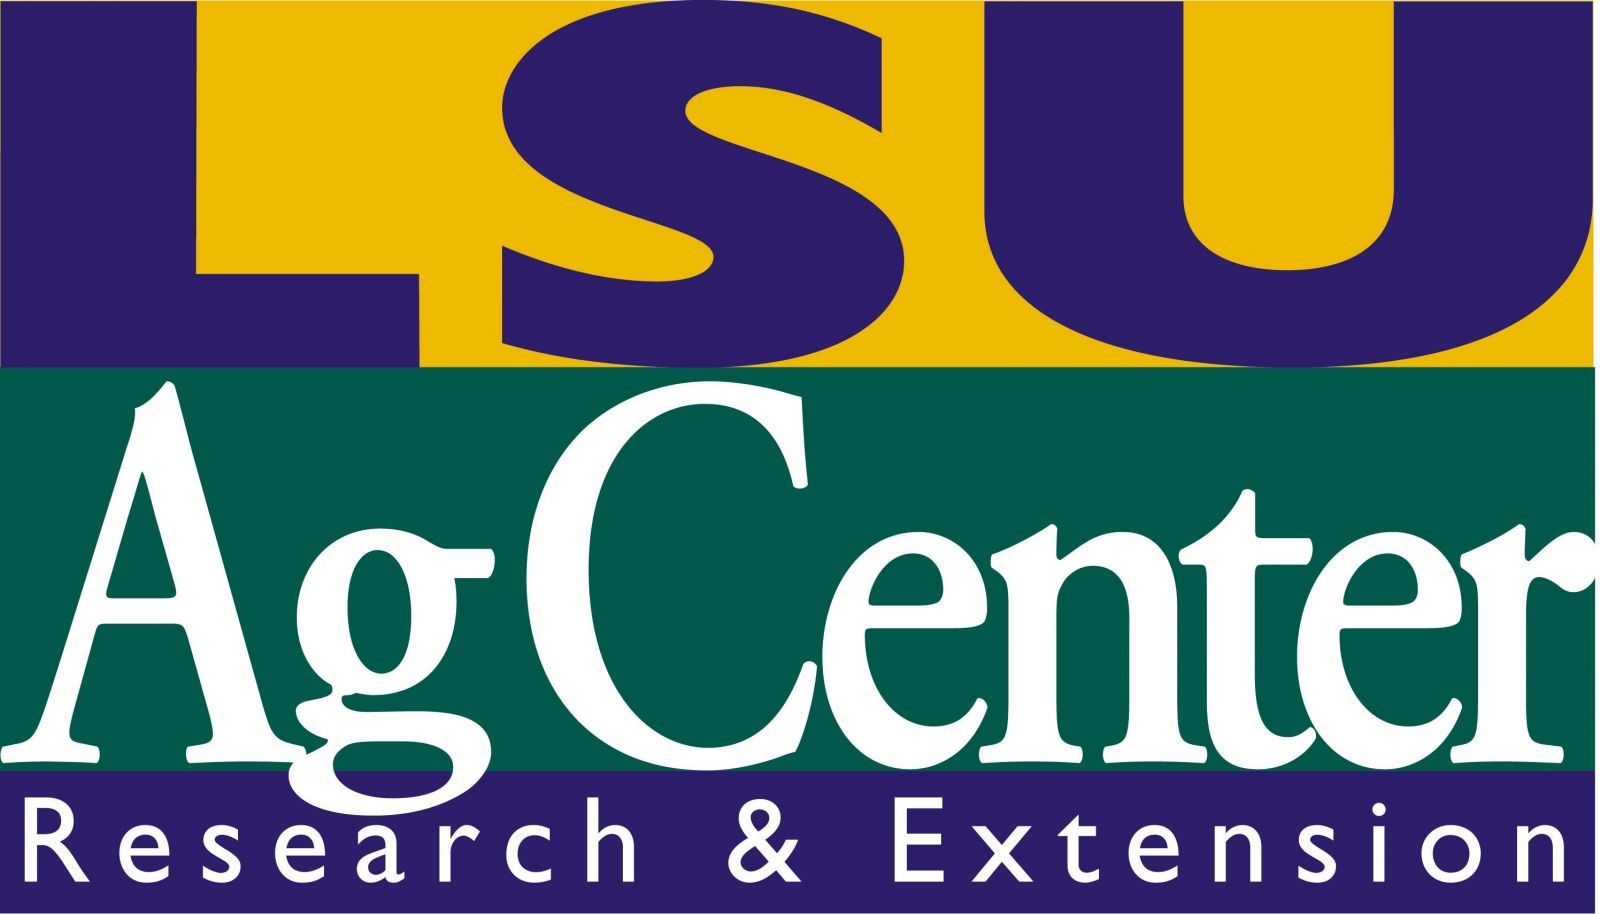 LSU Ag Center Research and Extension Logo